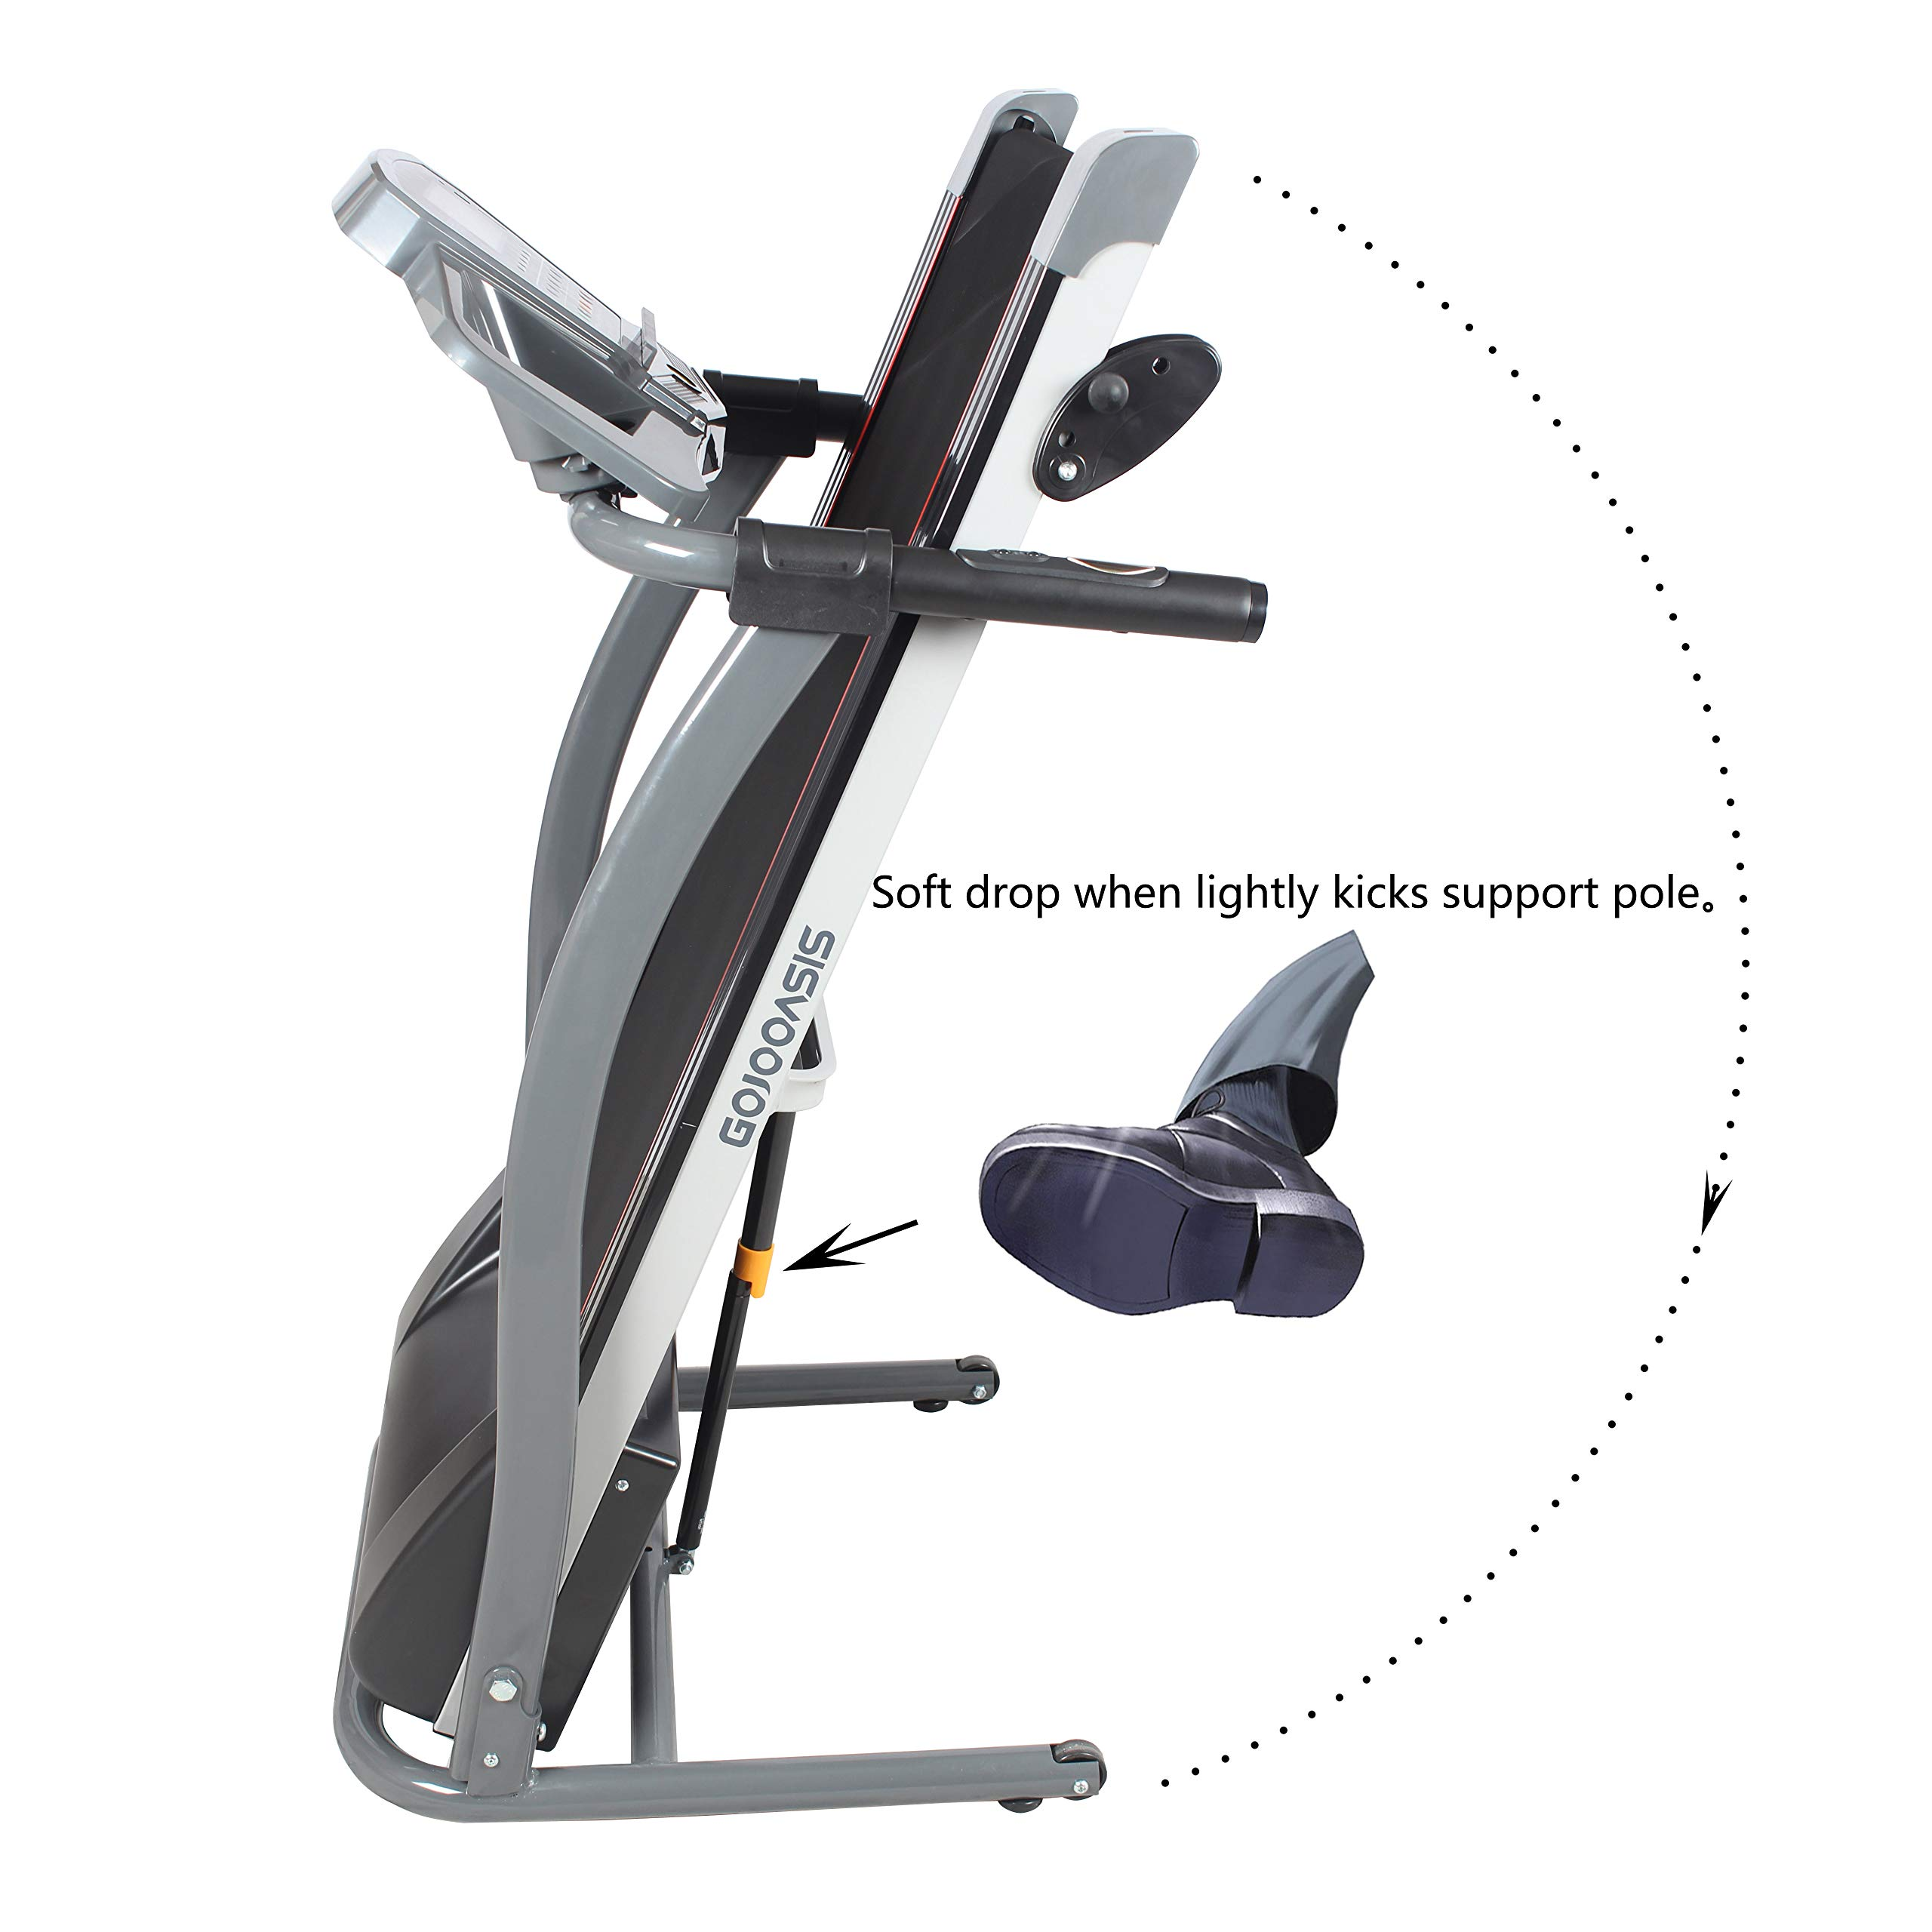 GOJOOASIS 2.0HP Treadmill Folding Motorized Running Exercise Machine w/Incline by GOJOOASIS (Image #6)